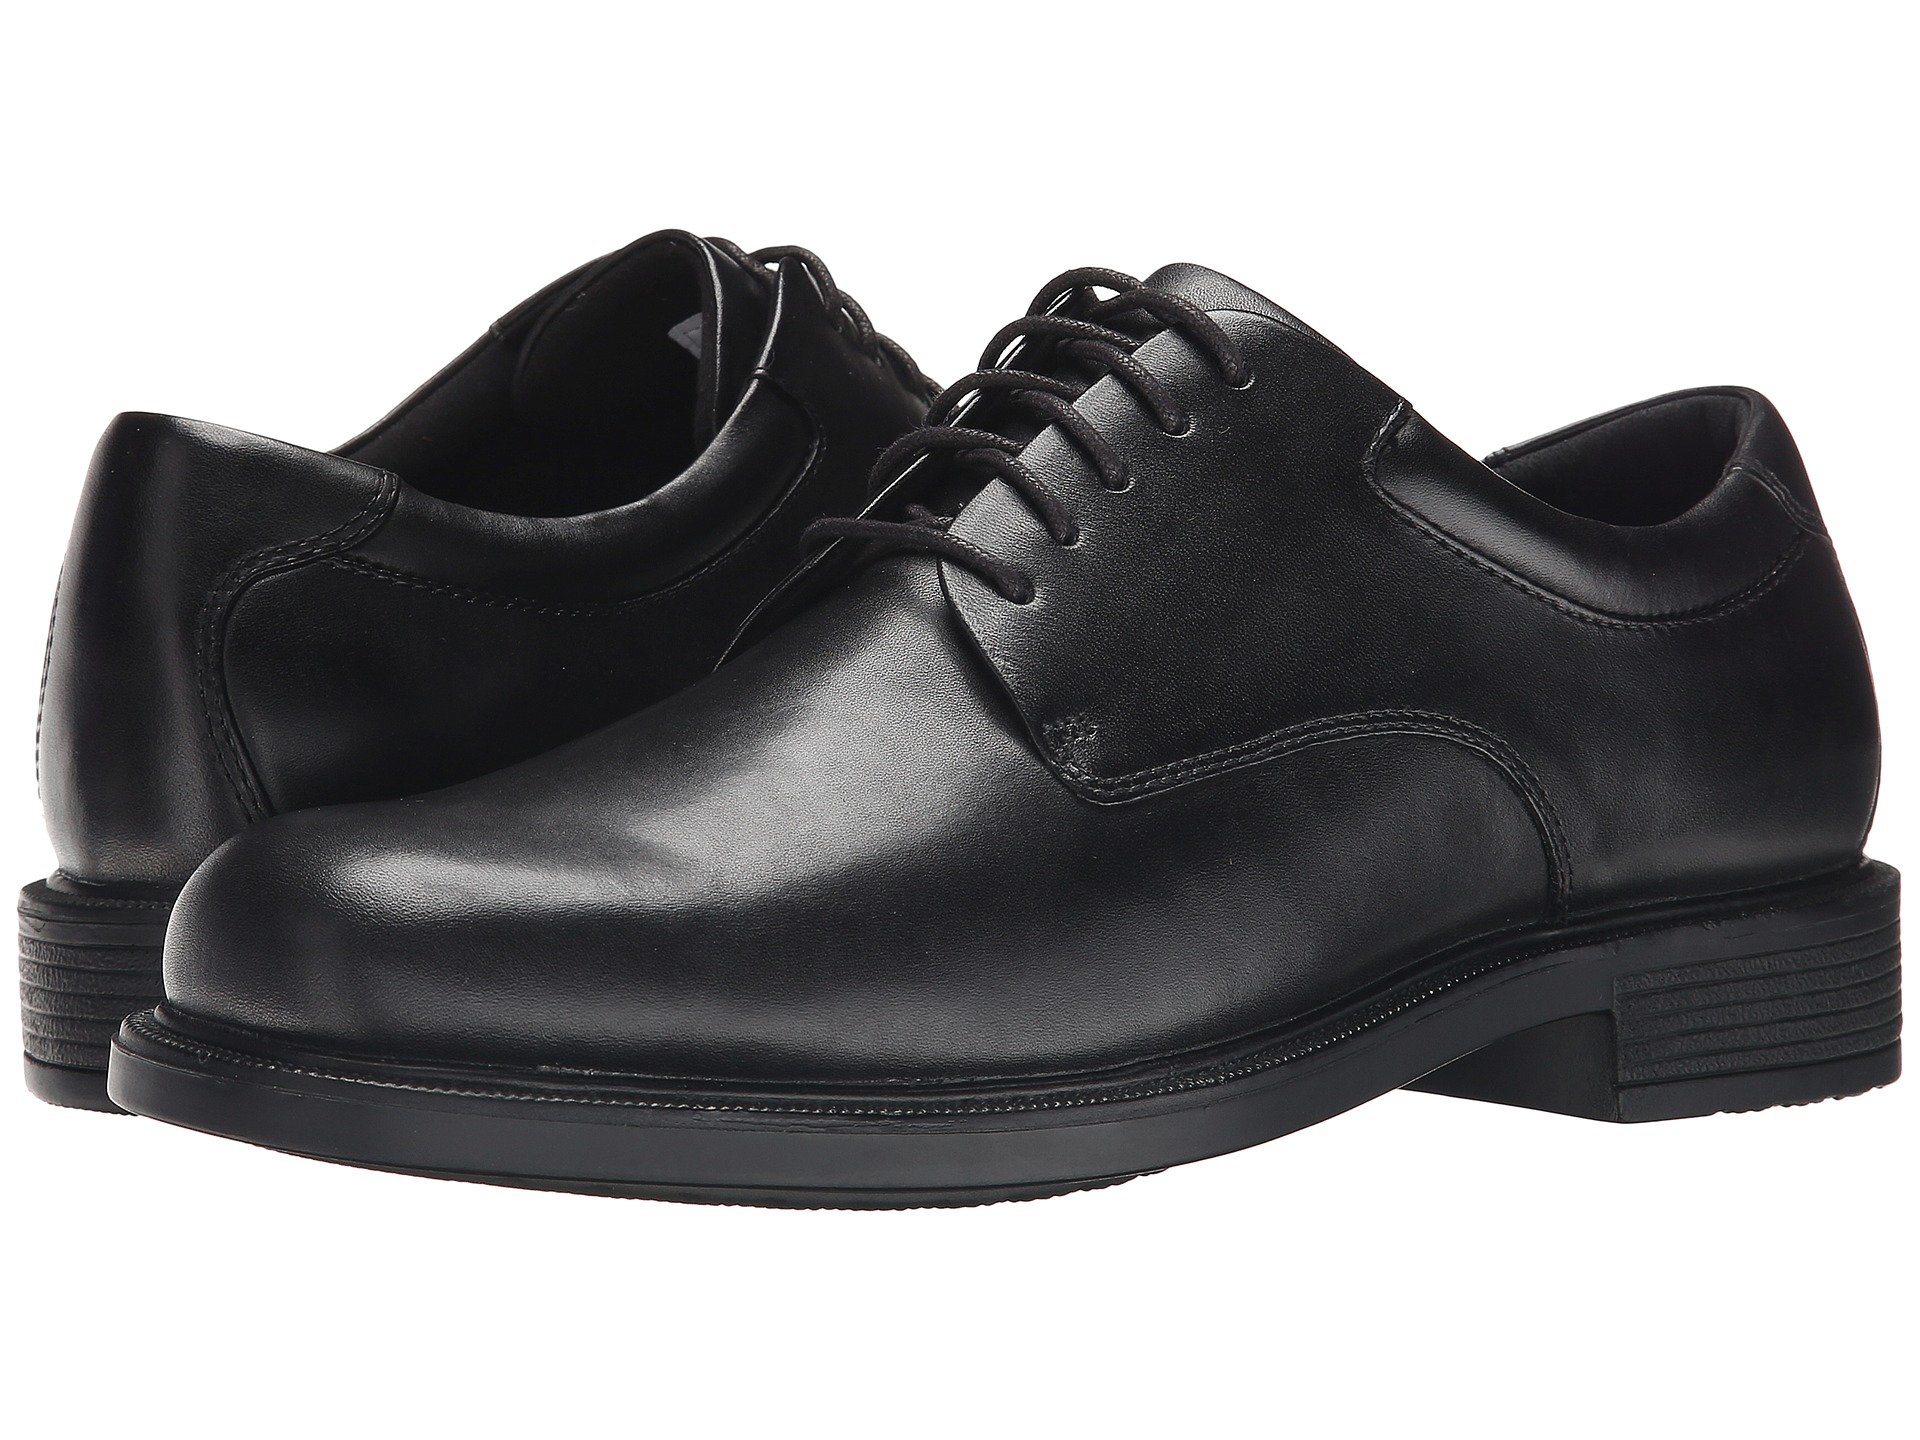 06d5b61e7ec2 Men s Office   Career Shoes + FREE SHIPPING